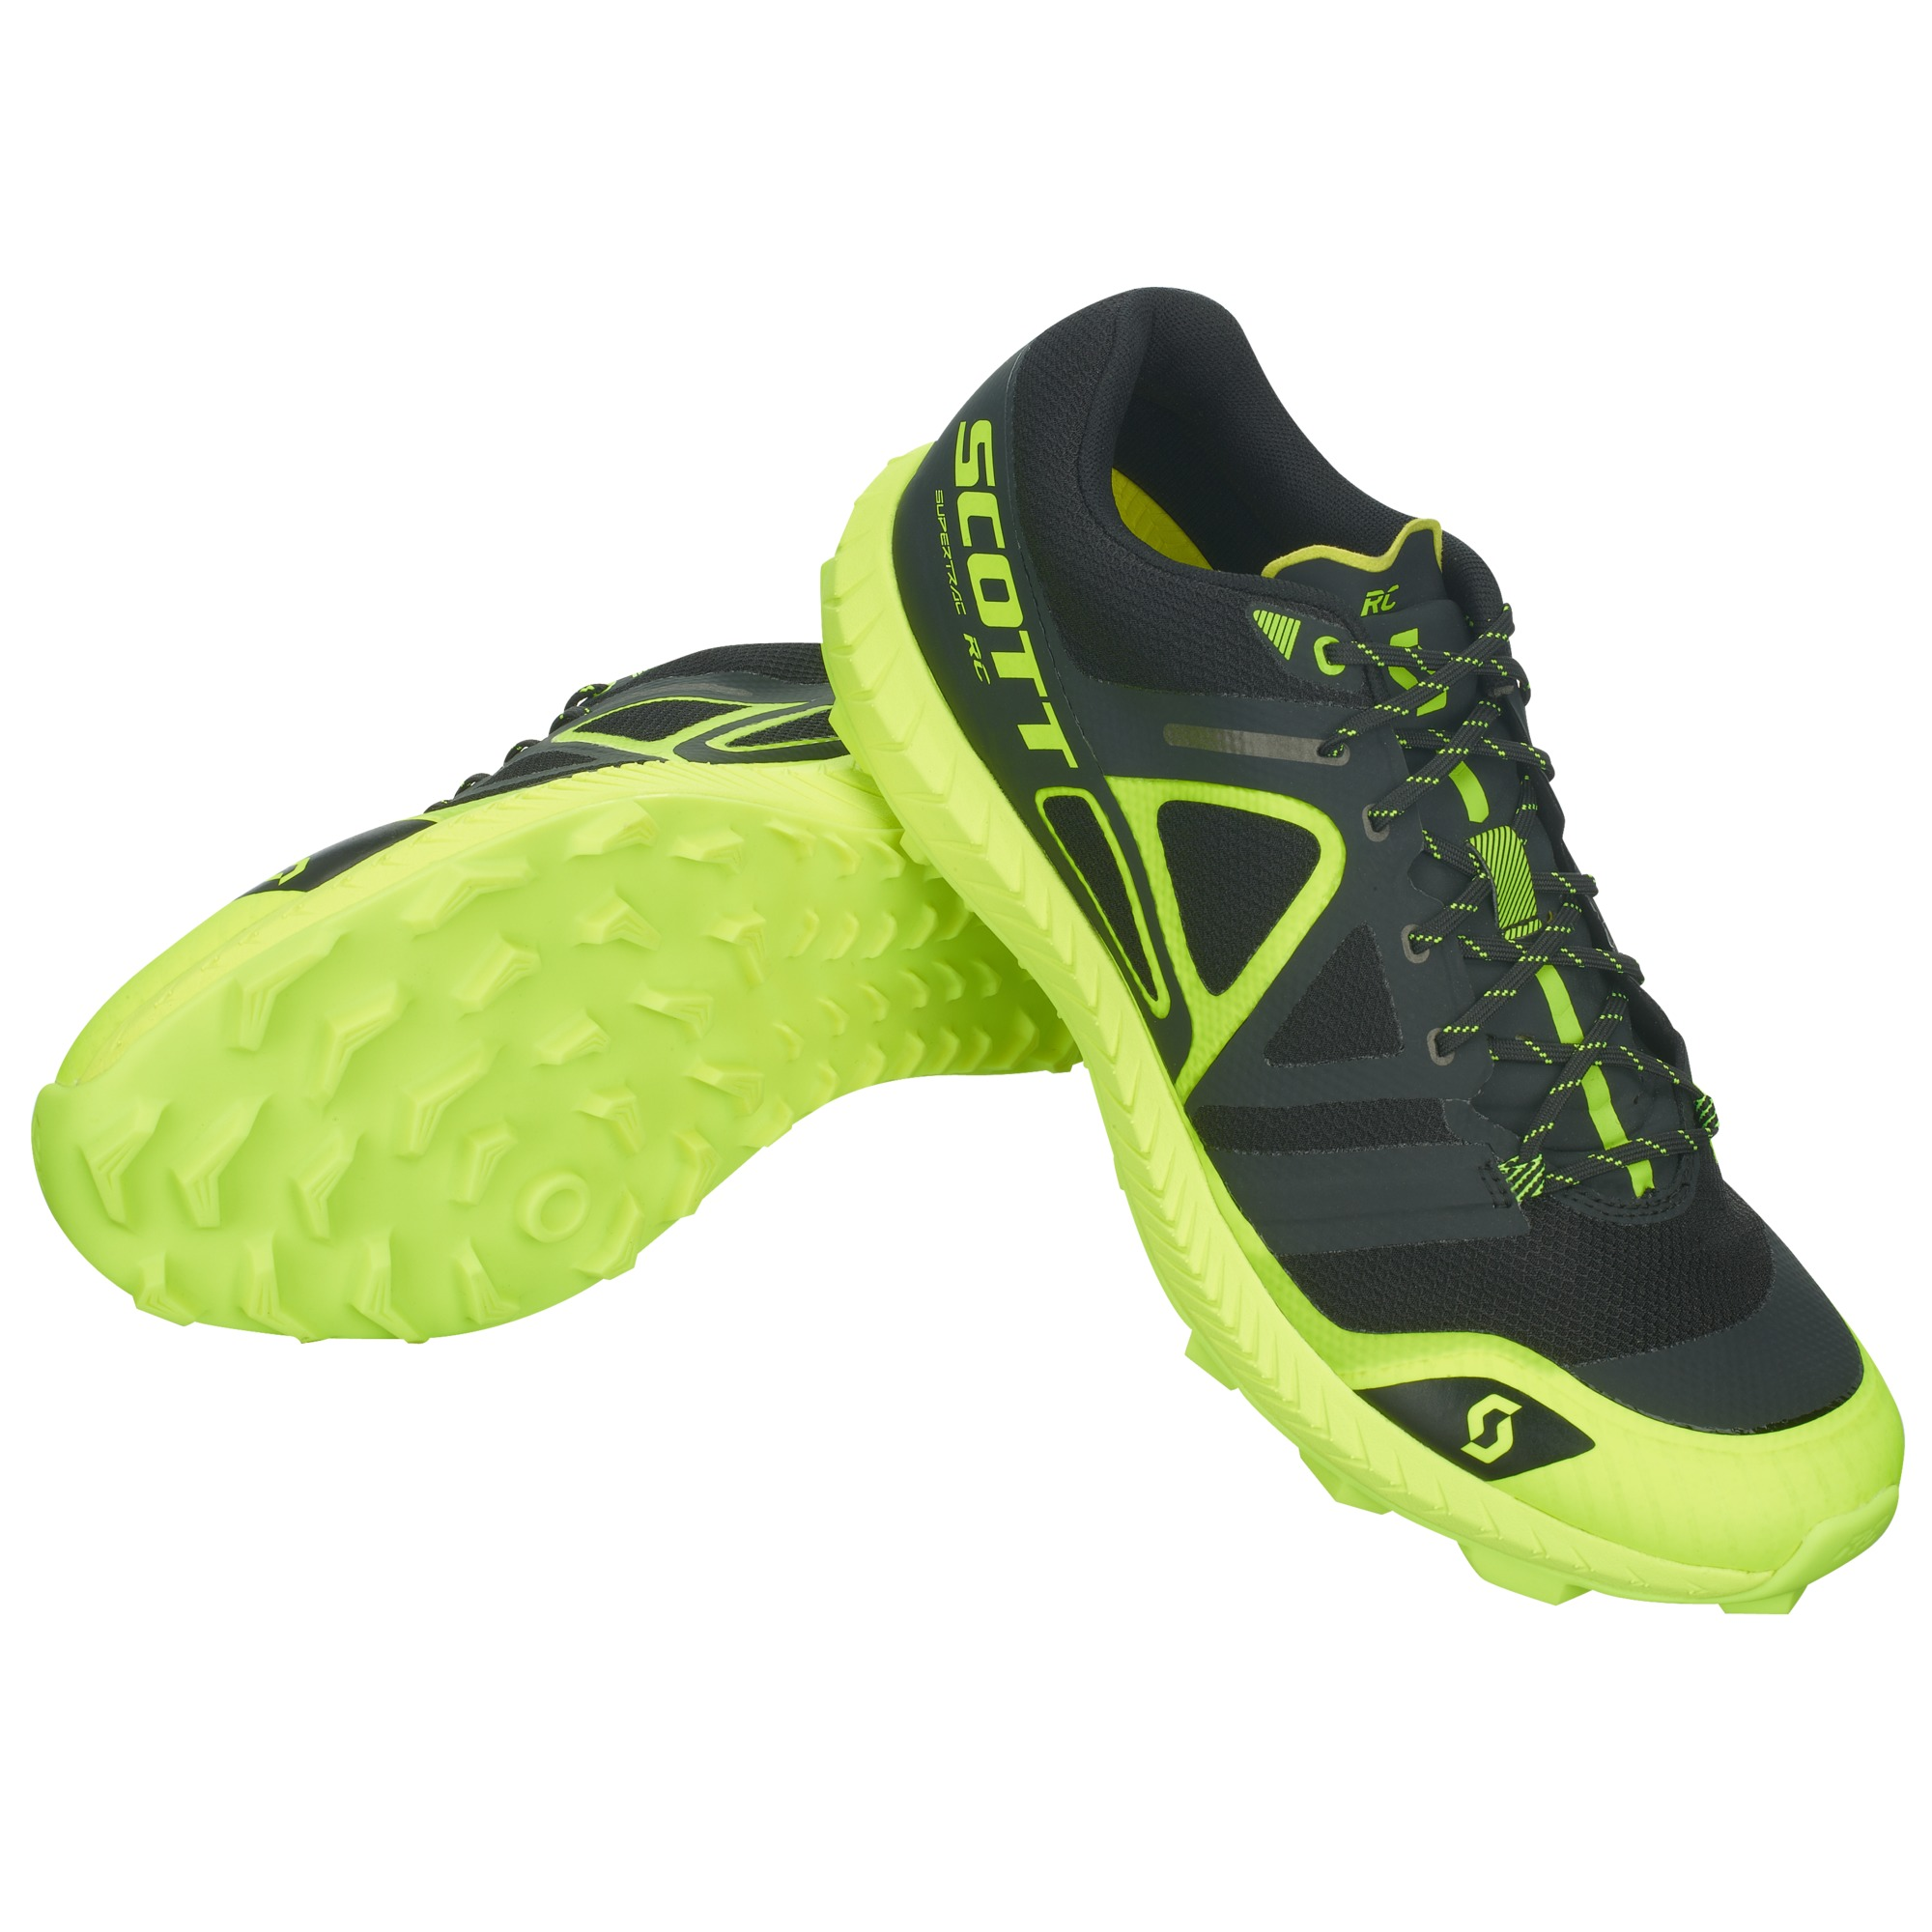 Scott Shoe Supertrac RC